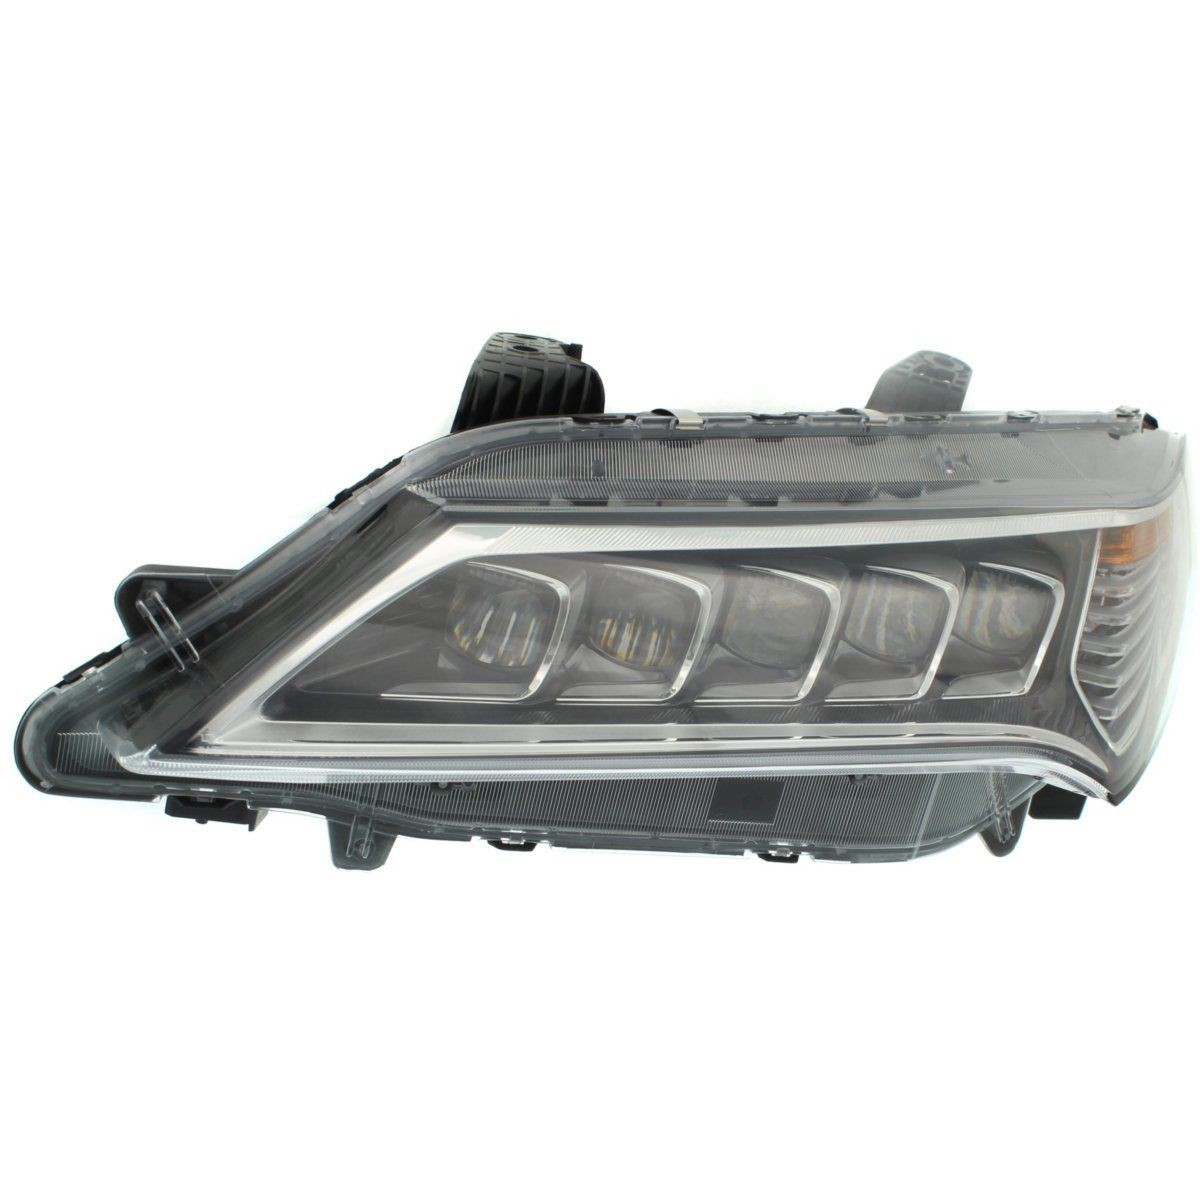 NEW LED HEADLIGHT ASSEMBLY LEFT SIDE FITS 2015-2017 ACURA